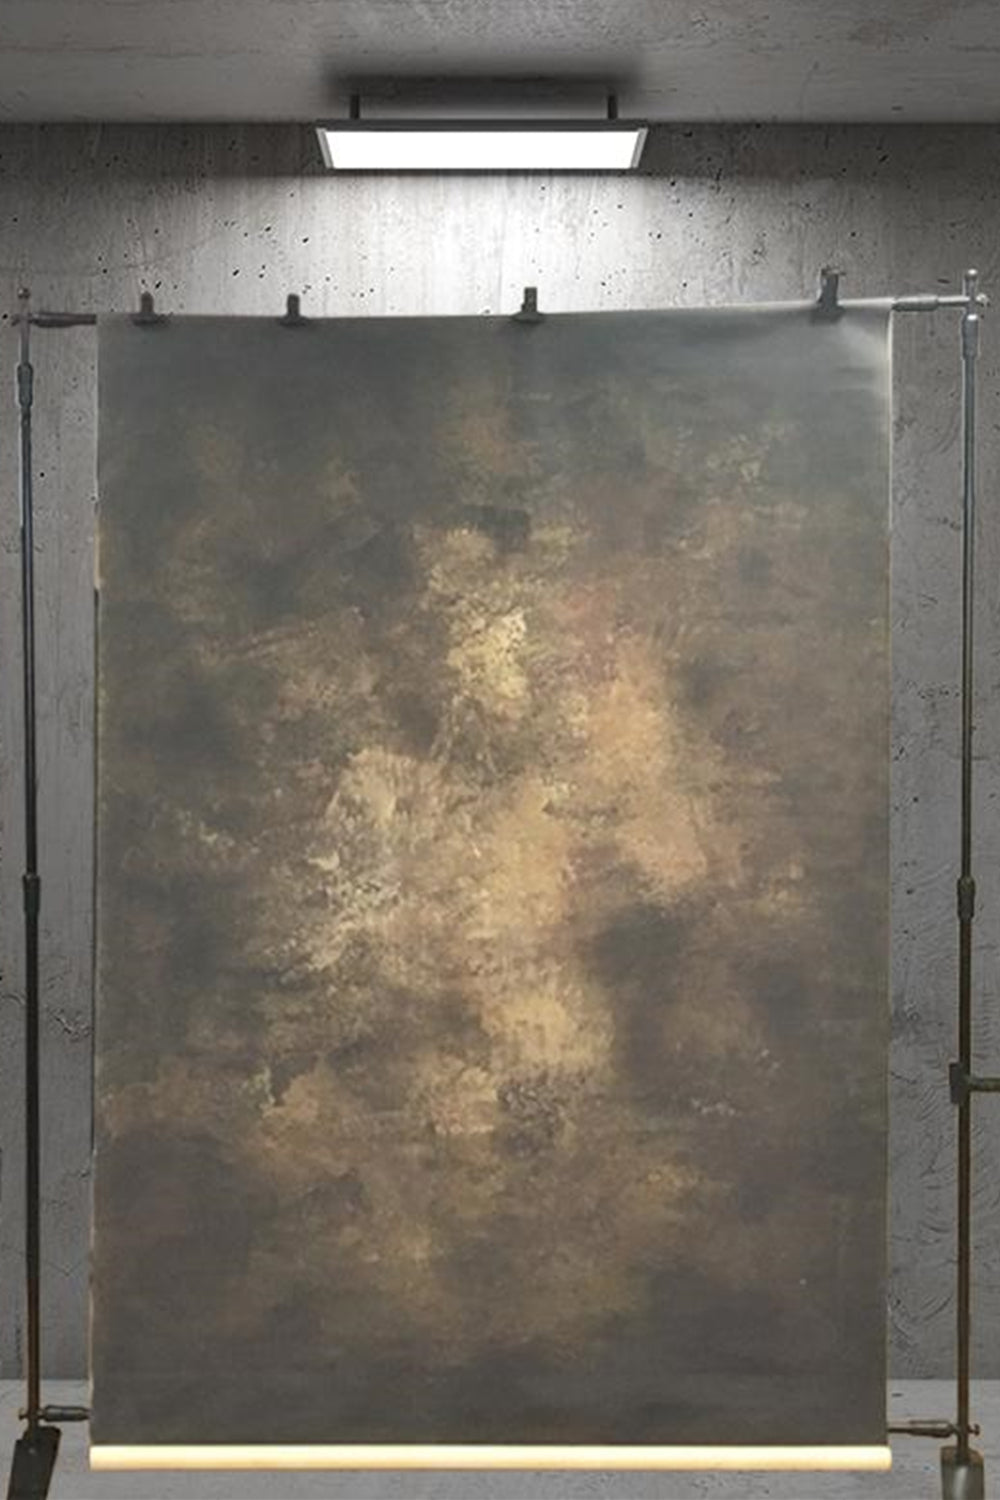 RTS-Clotstudio 5X7 ft & 7X9 ft Abstract Dark Brown Yellow Textured Hand Painted Canvas Backdrop #clot 8-Strong Textured-CLOT STUDIO-custom hand painted canvas studio photo backdrops handmade photography backgrounds